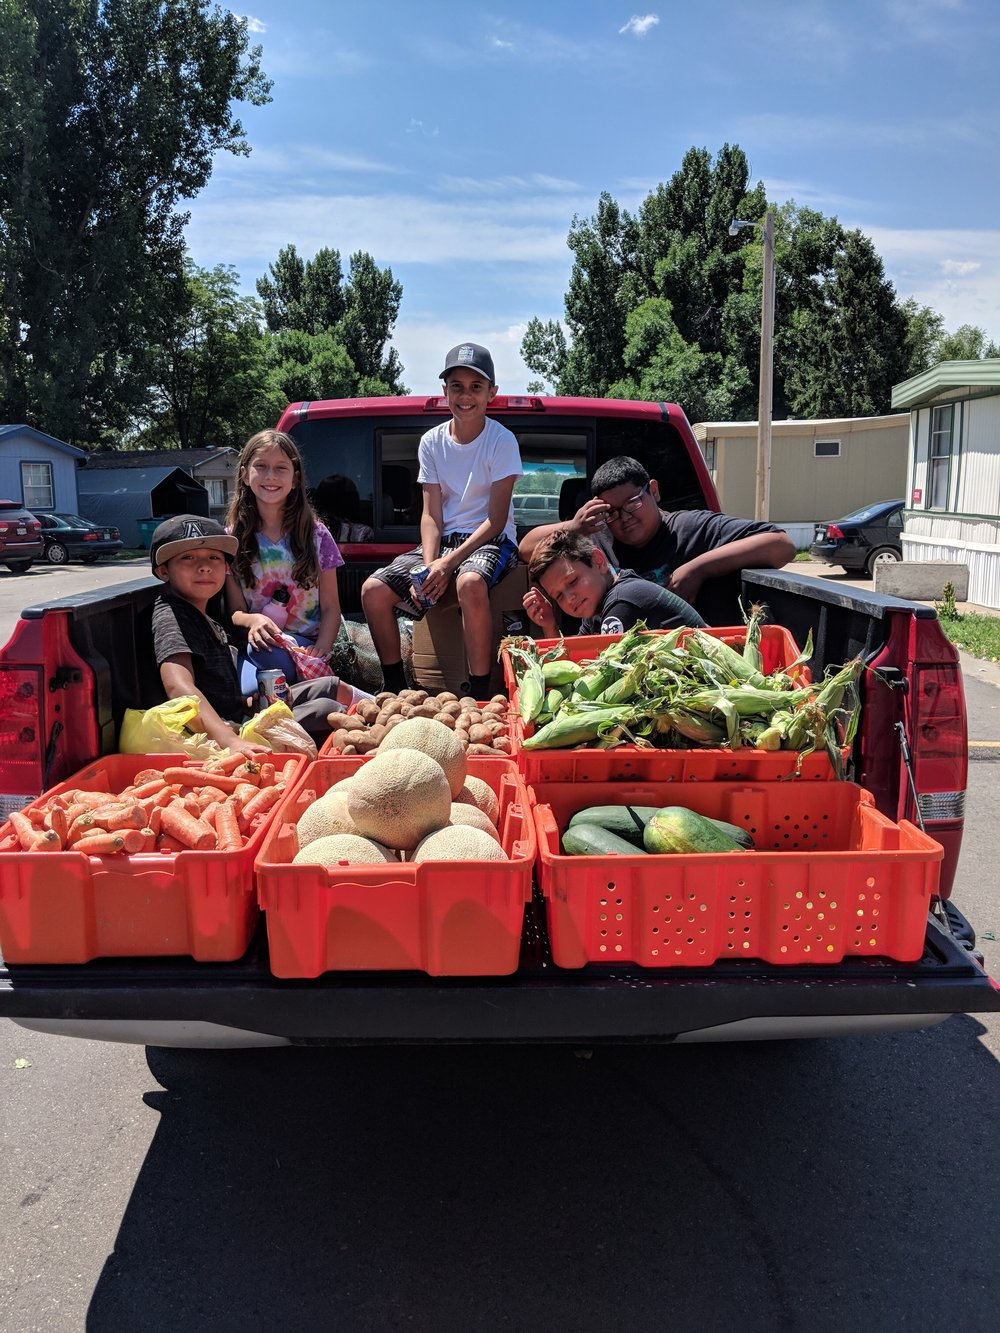 About - Find out about our organization,mission, our methods, and the results of our decade of relationship building.We've had the amazing experience of providing over 20,000 pounds of produce to families in need! Find out how.